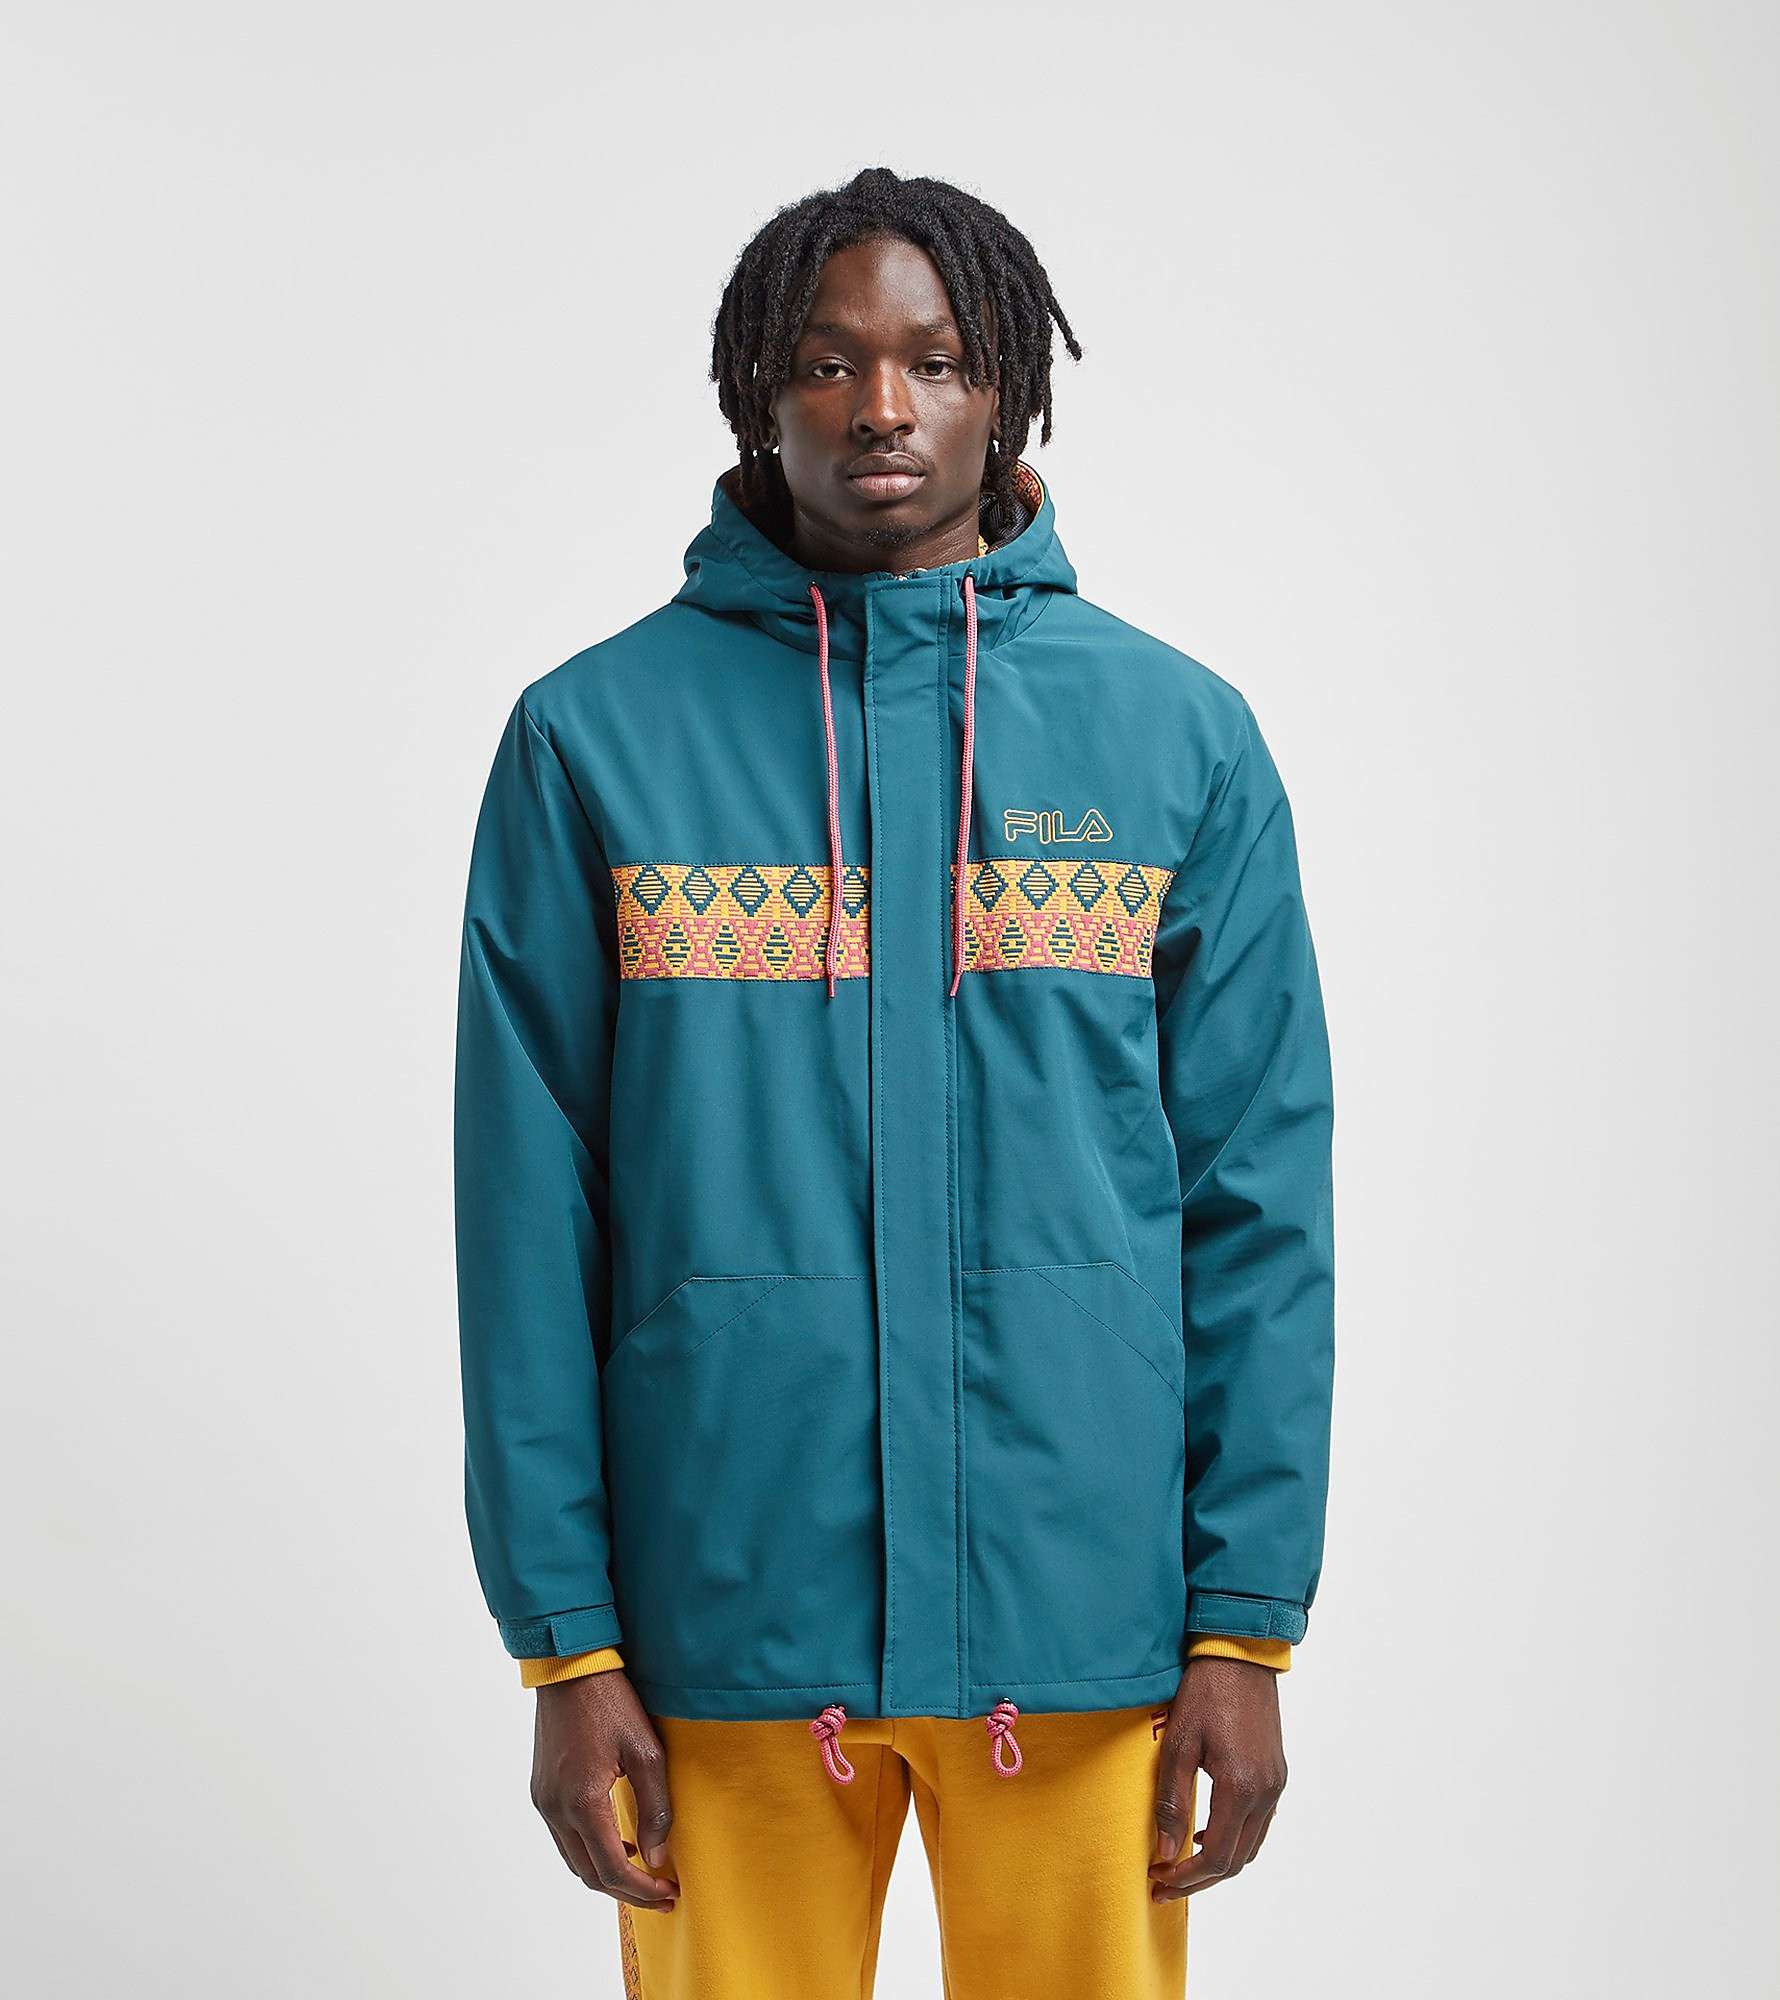 Fila Manaslu Jacket - size? Exclusive, Verde